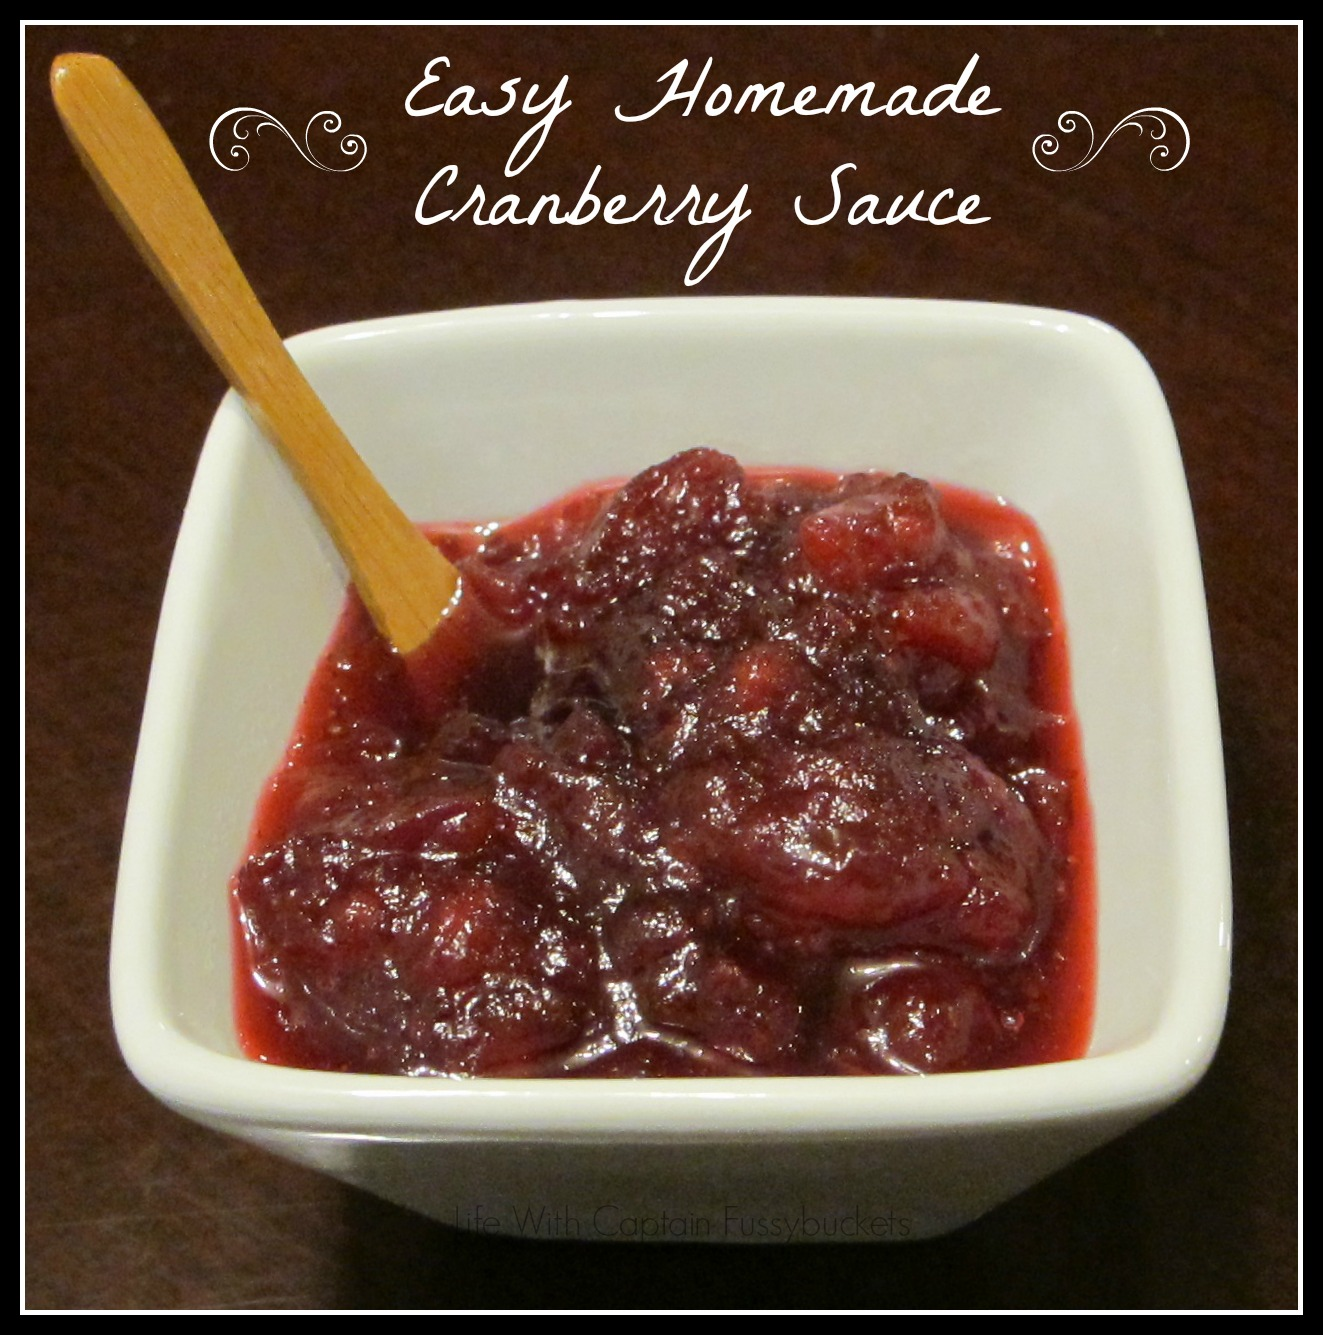 Now….back to the homemade cranberry sauce. It takes about 10 minutes ...